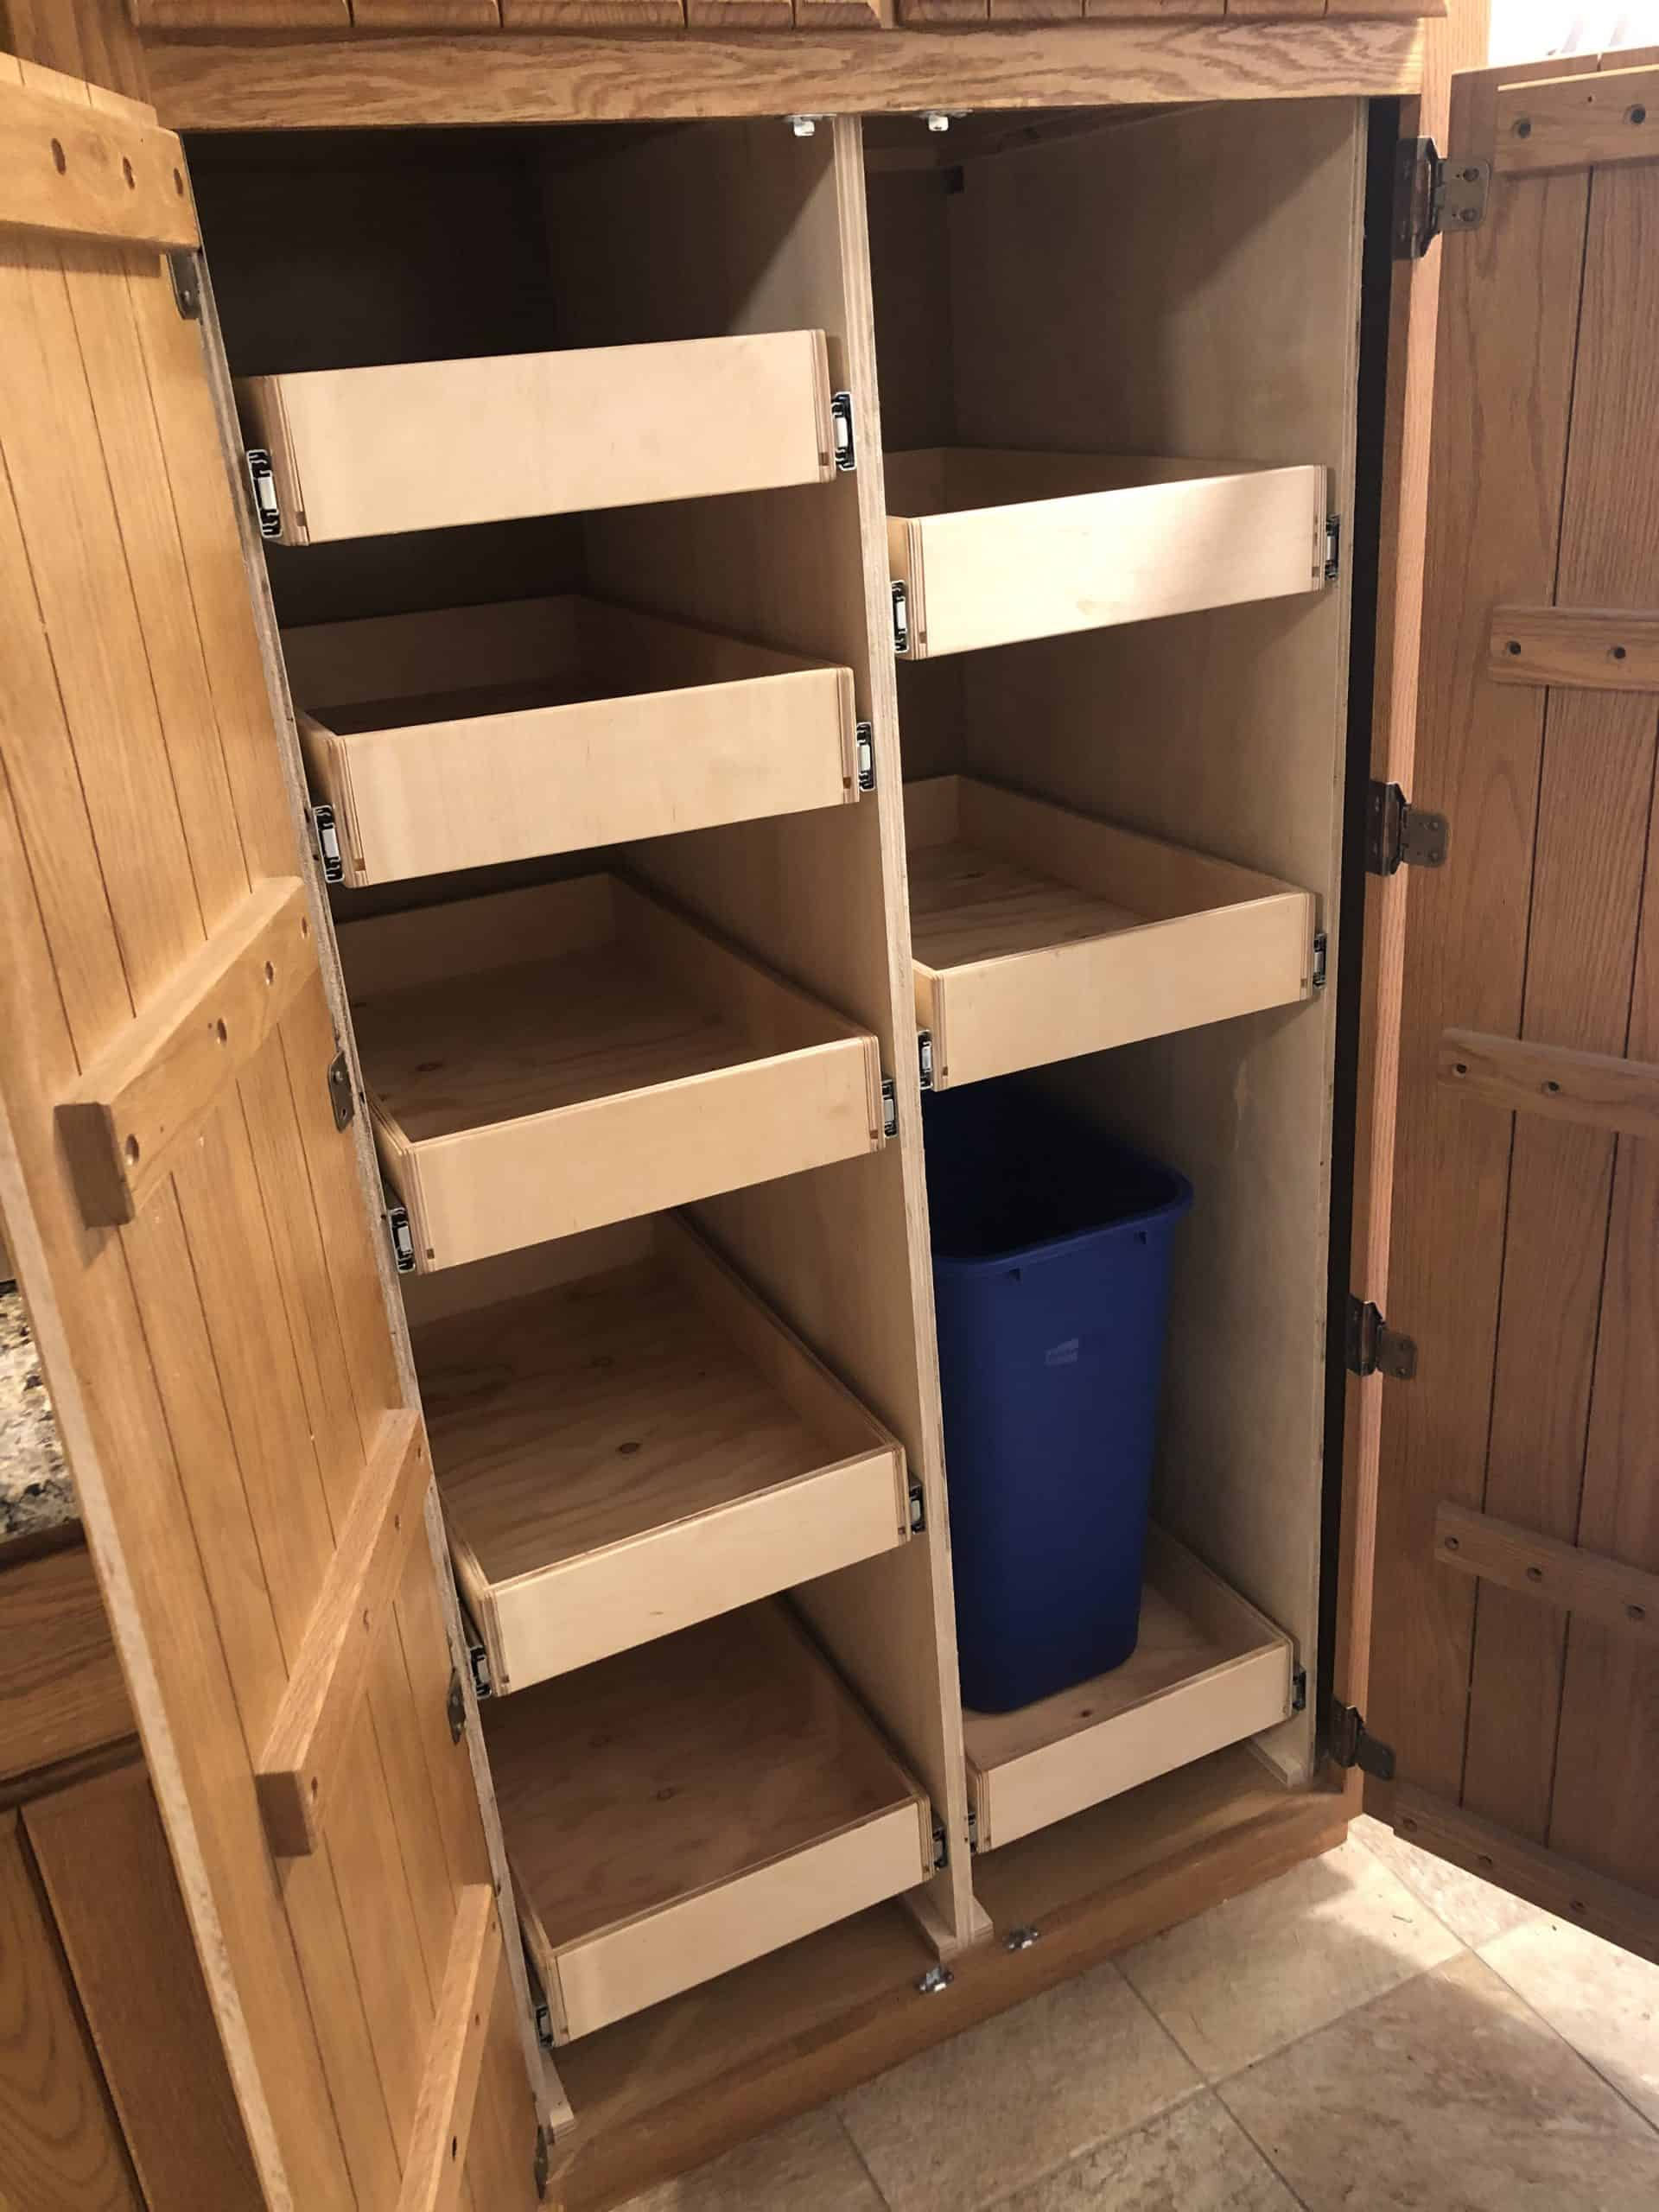 Diy Pull Out Pantry Shelves Incredible 5 Part Guide To Transform Your Kitchen Organization Weekend Diy Projects